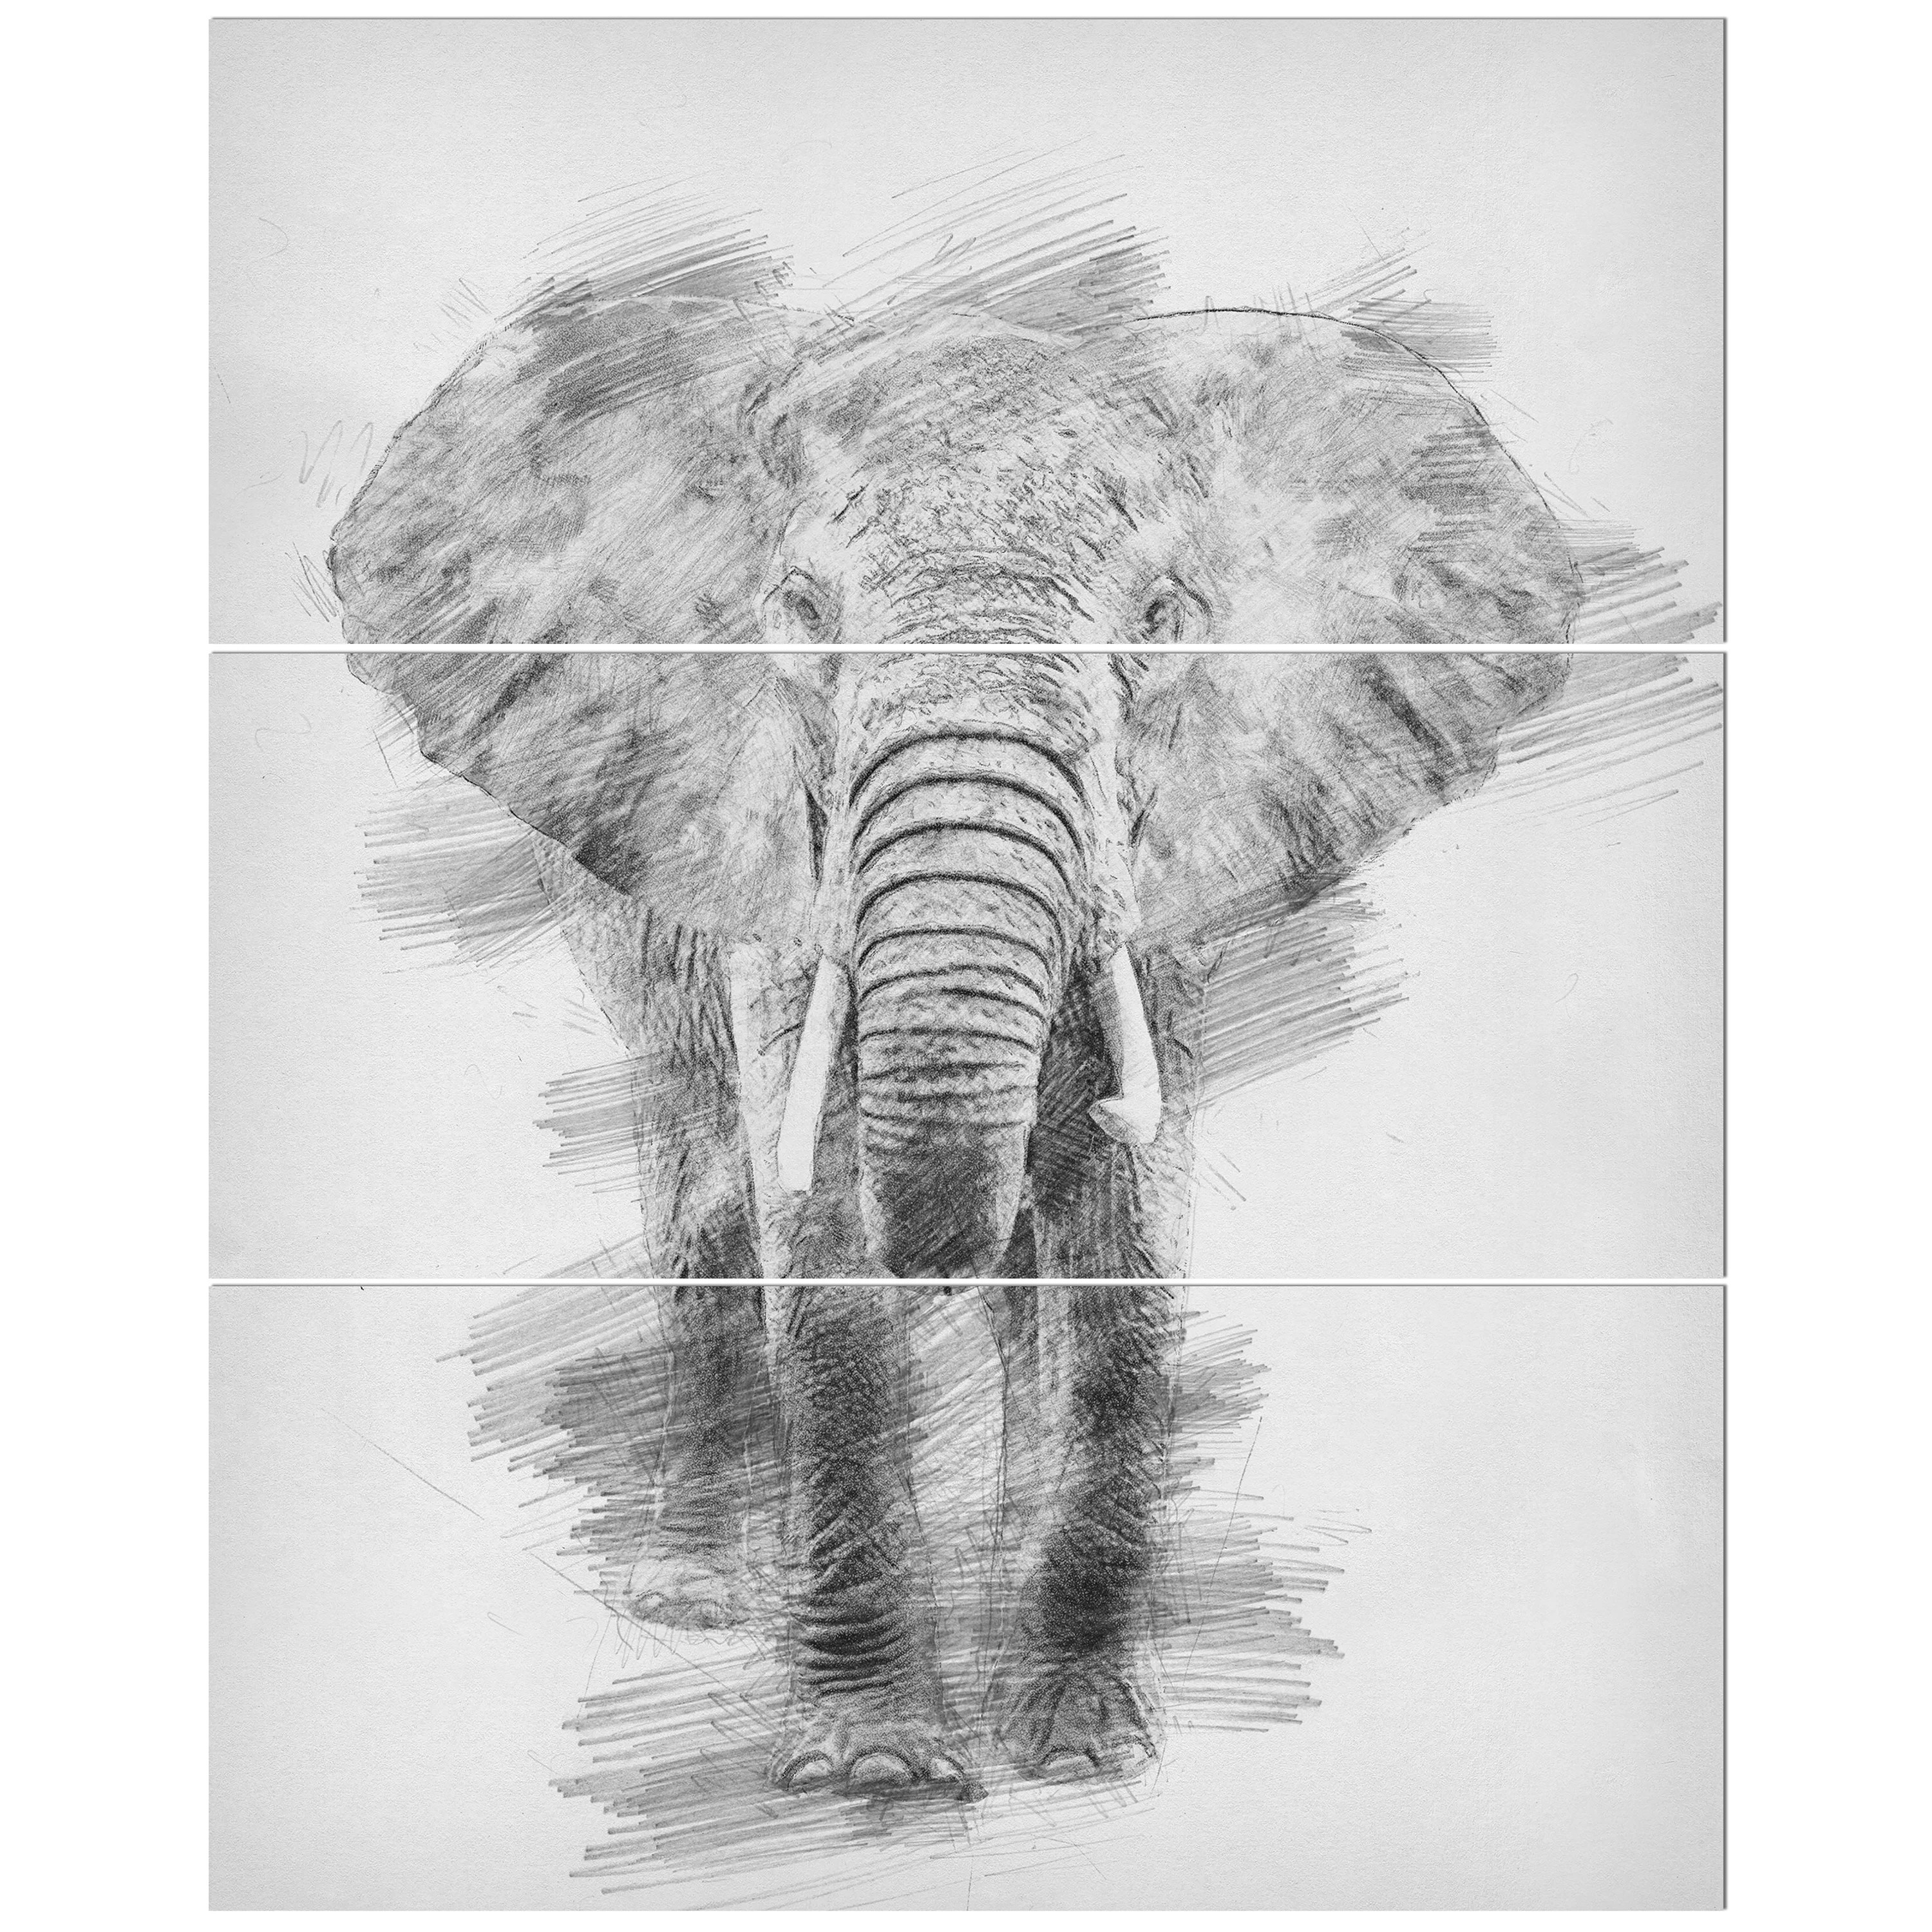 East Urban Home Black And White Elephant Pencil Sketch Drawing Print Multi Piece Image On Wrapped Canvas Wayfair